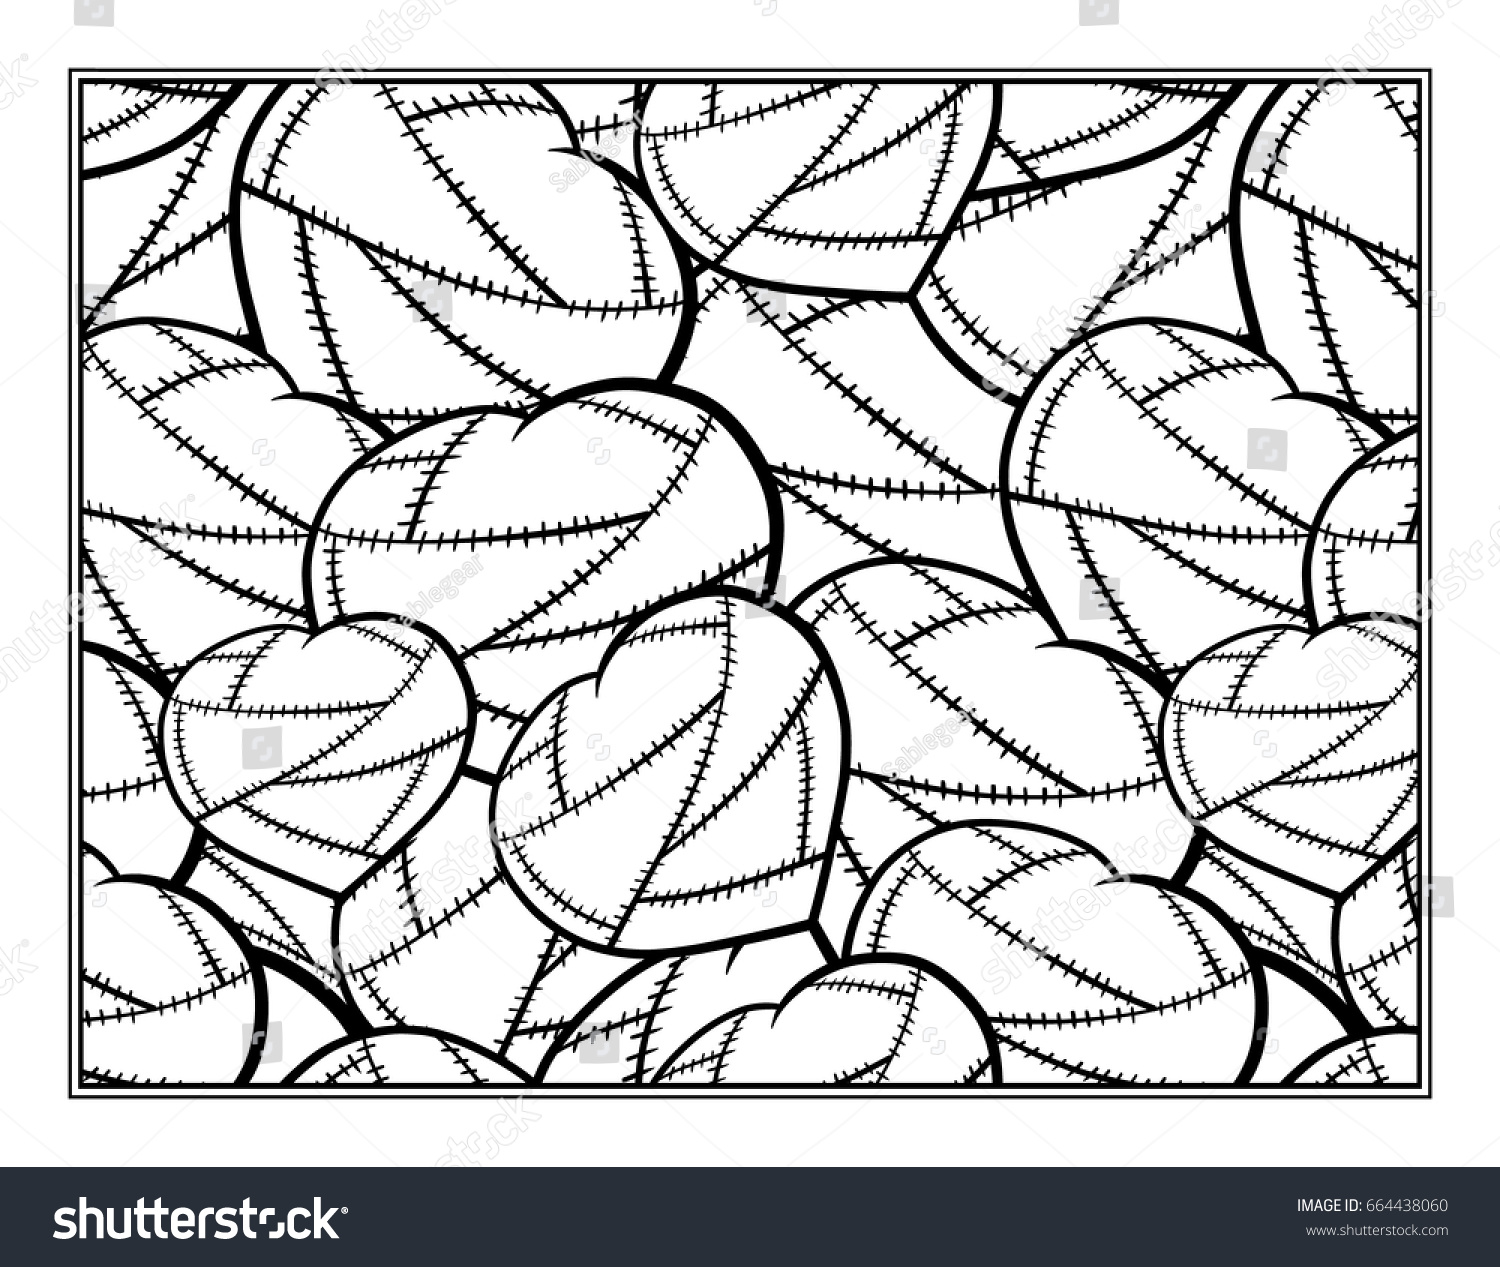 stitched hearts decorative ornamental coloring page stock vector